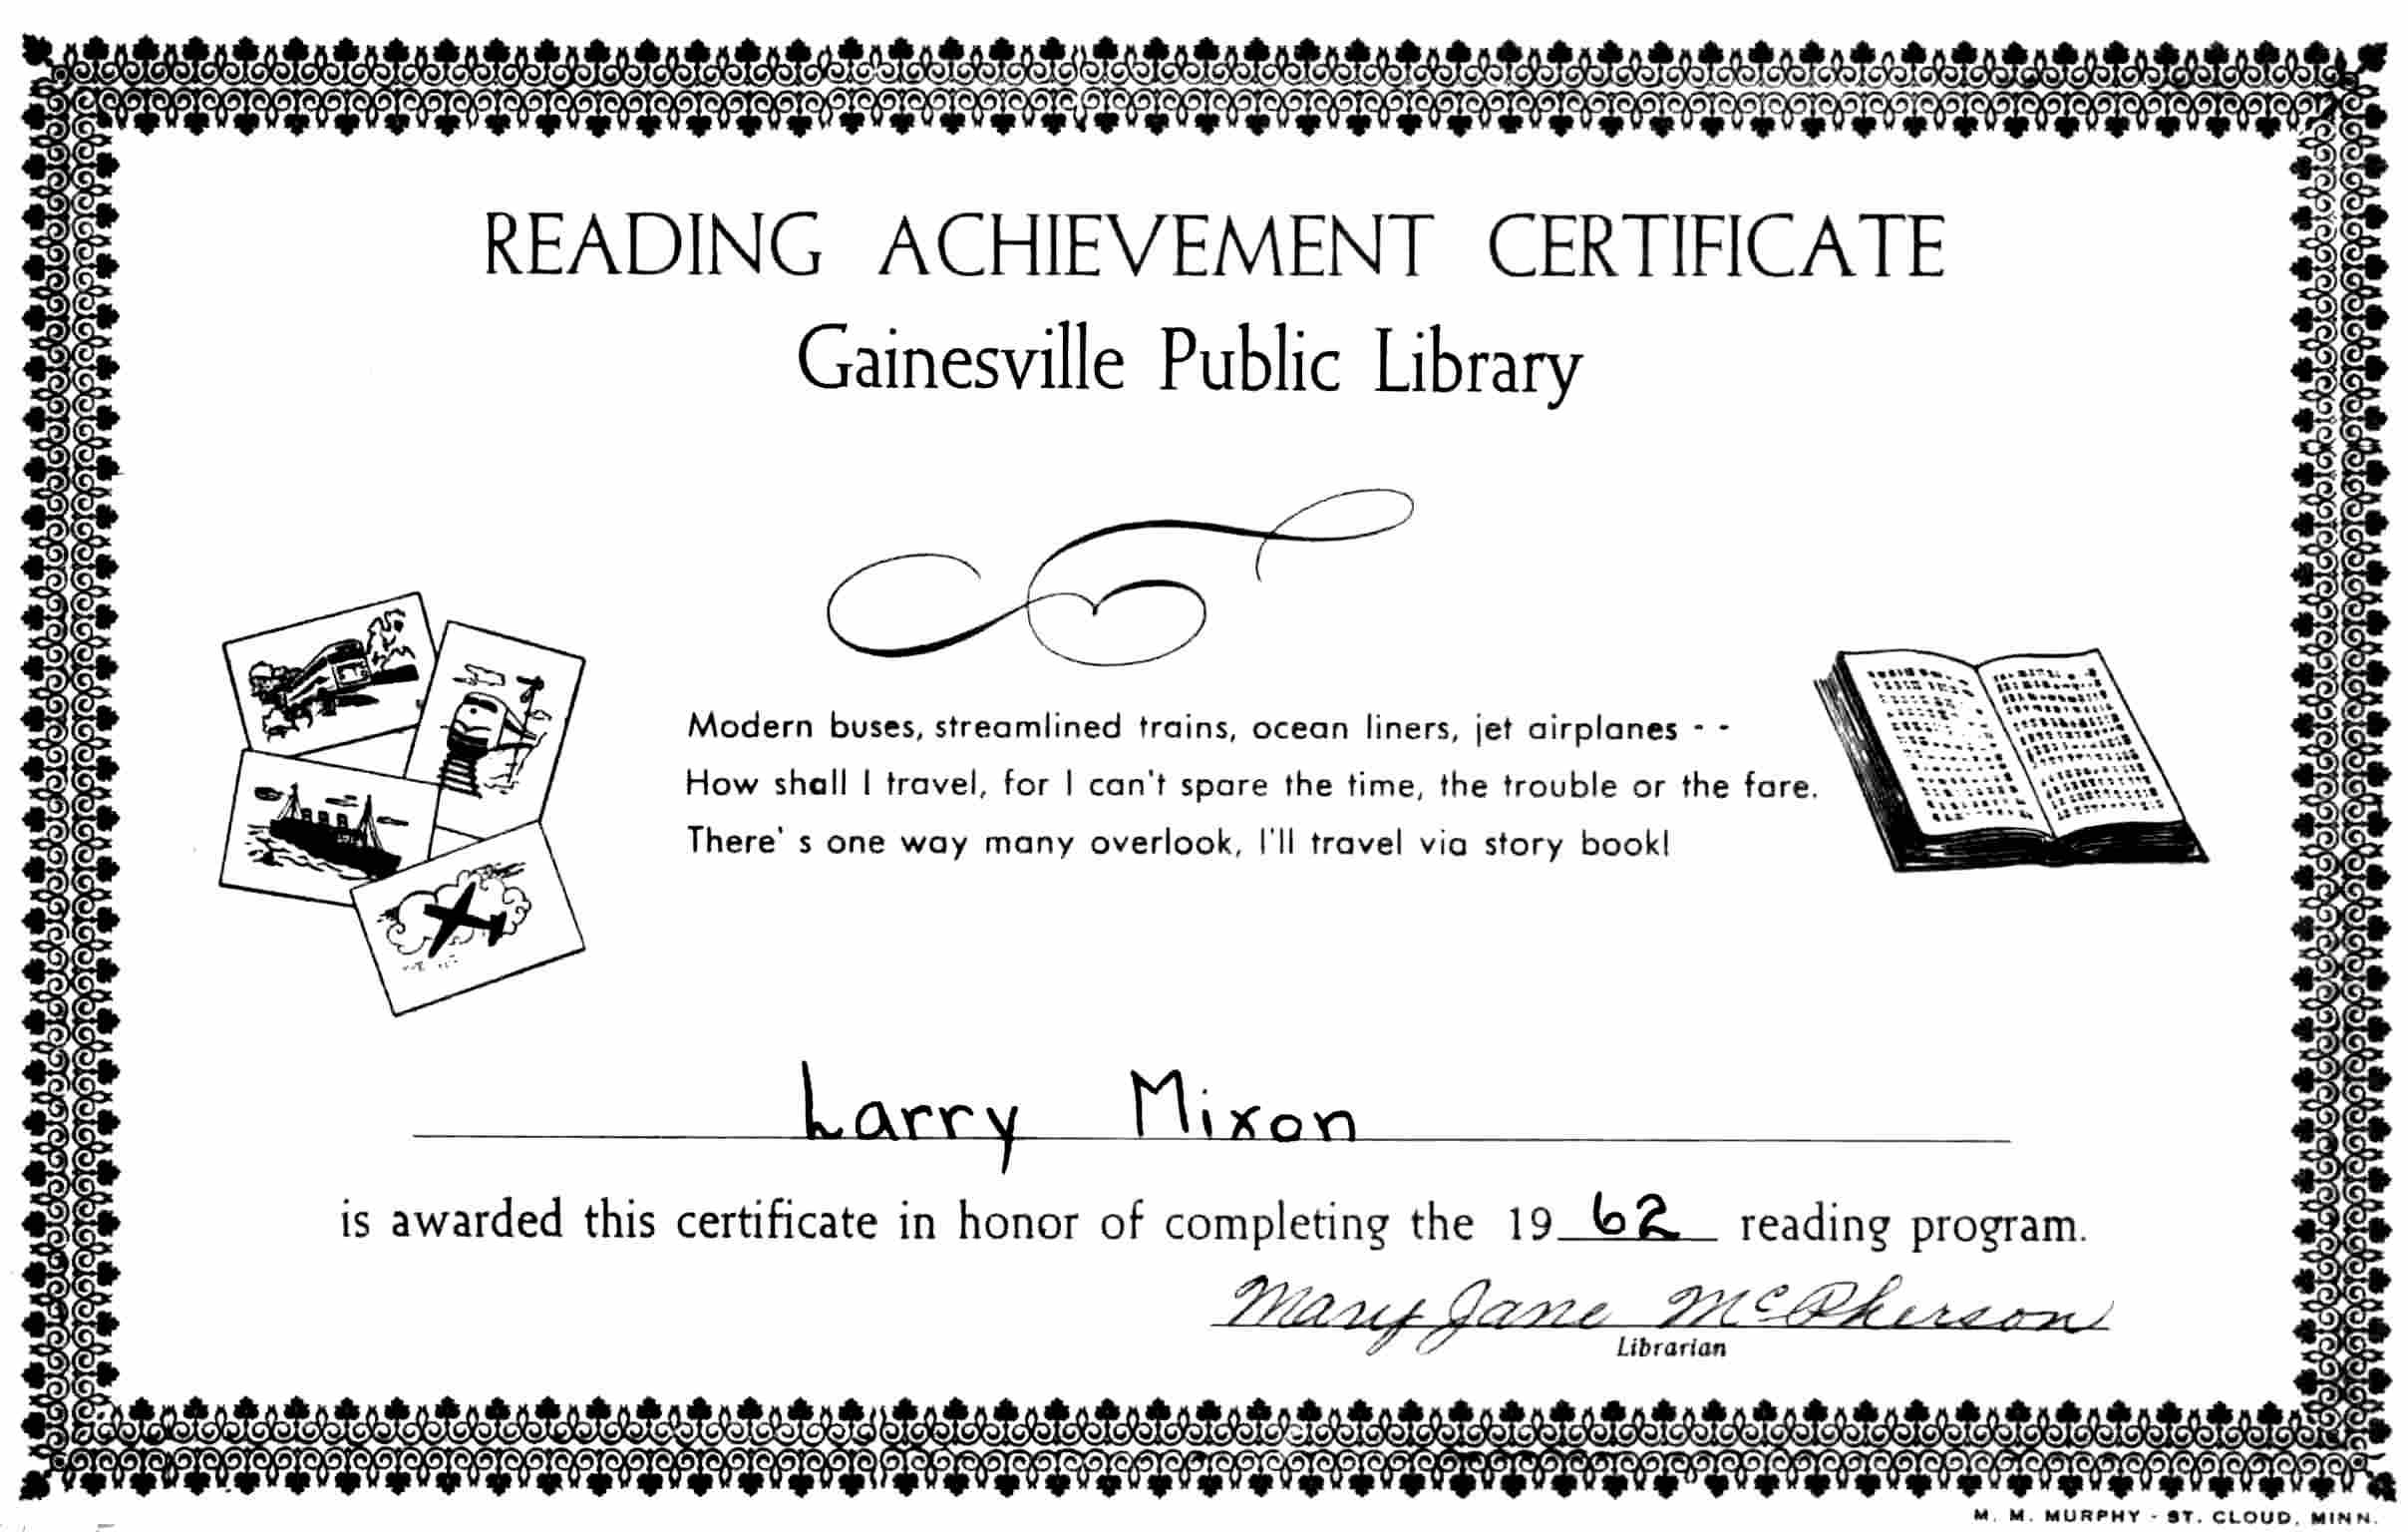 Lm1962 documents sunday school promotion public library reading certificate 1betcityfo Choice Image